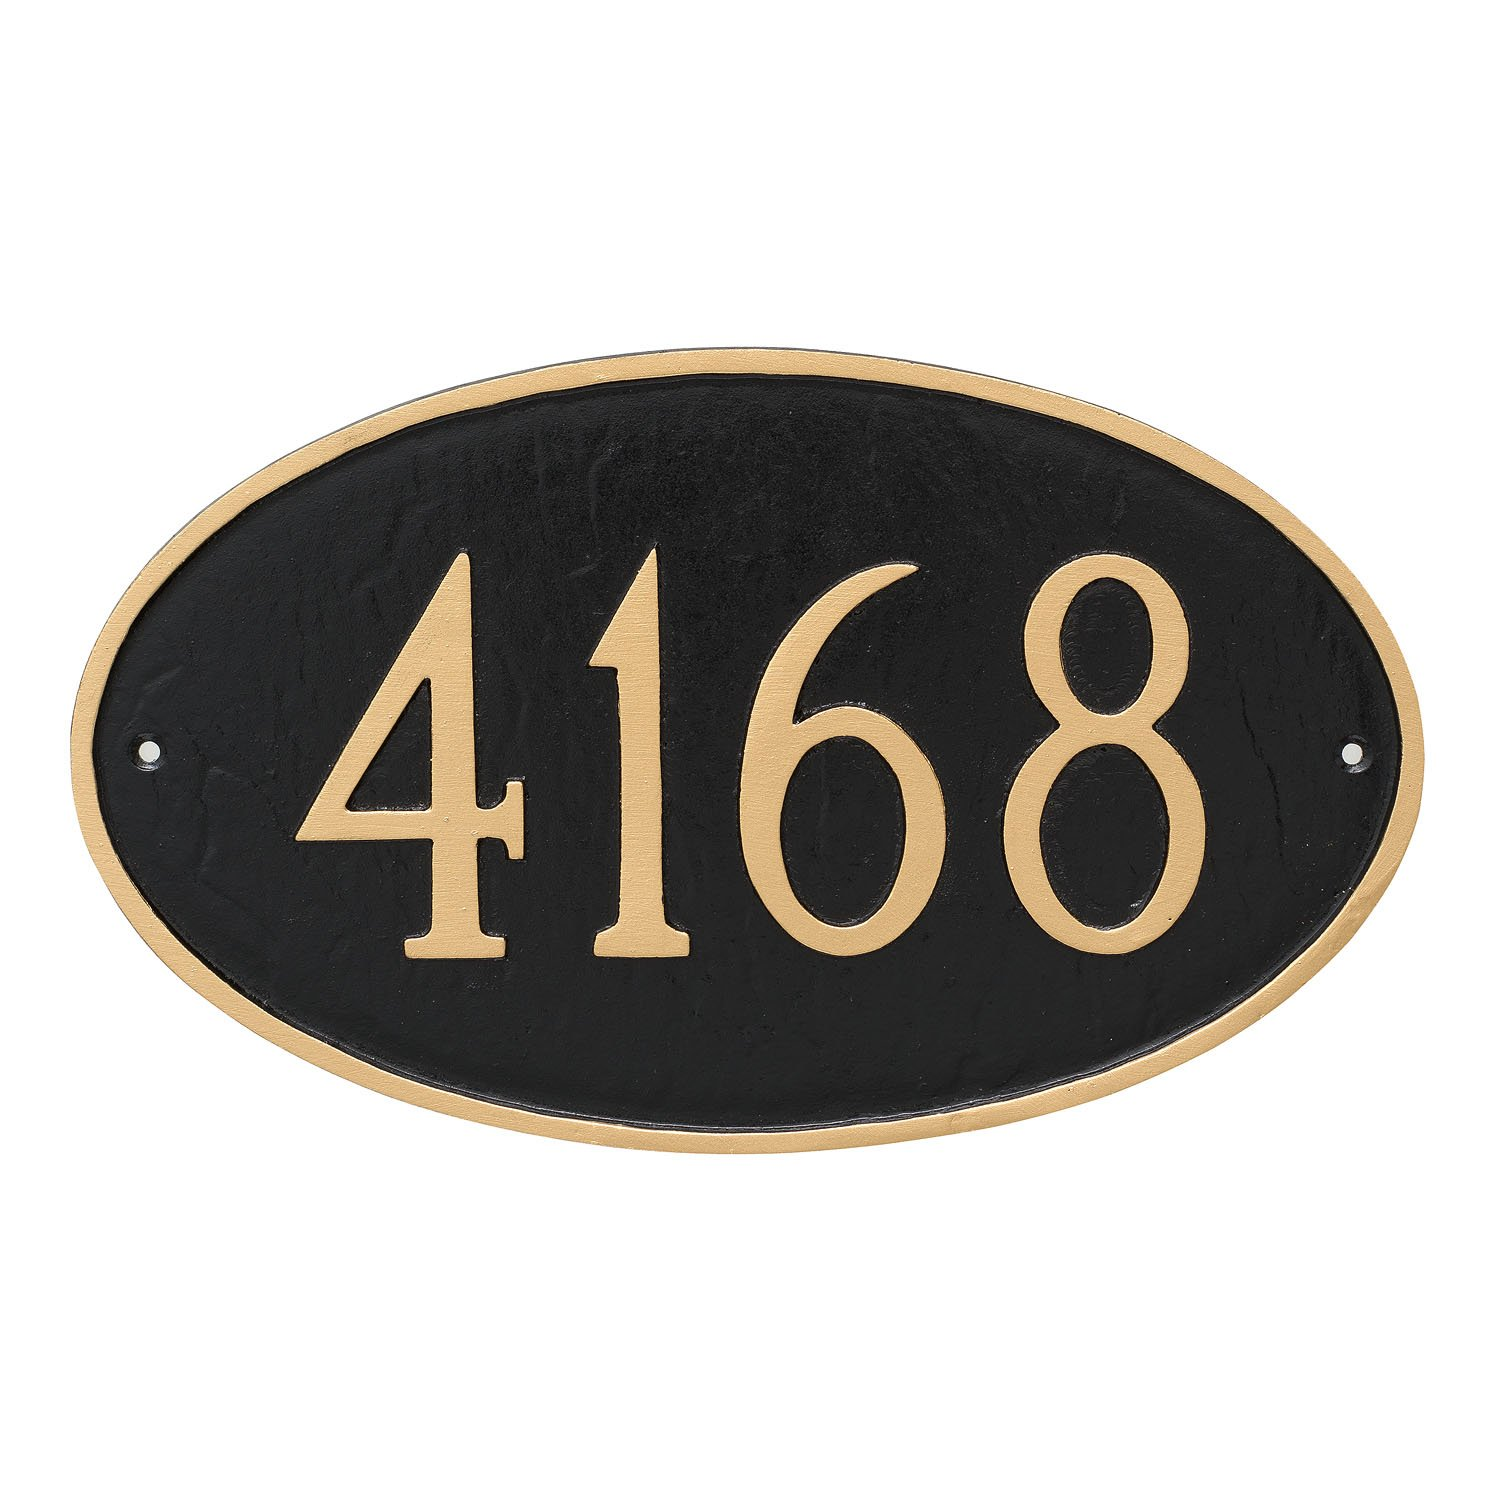 "Montague Metal 6"" x 10"" Classic Oval Address Sign Plaque, Small, Aged Bronze/Gold"